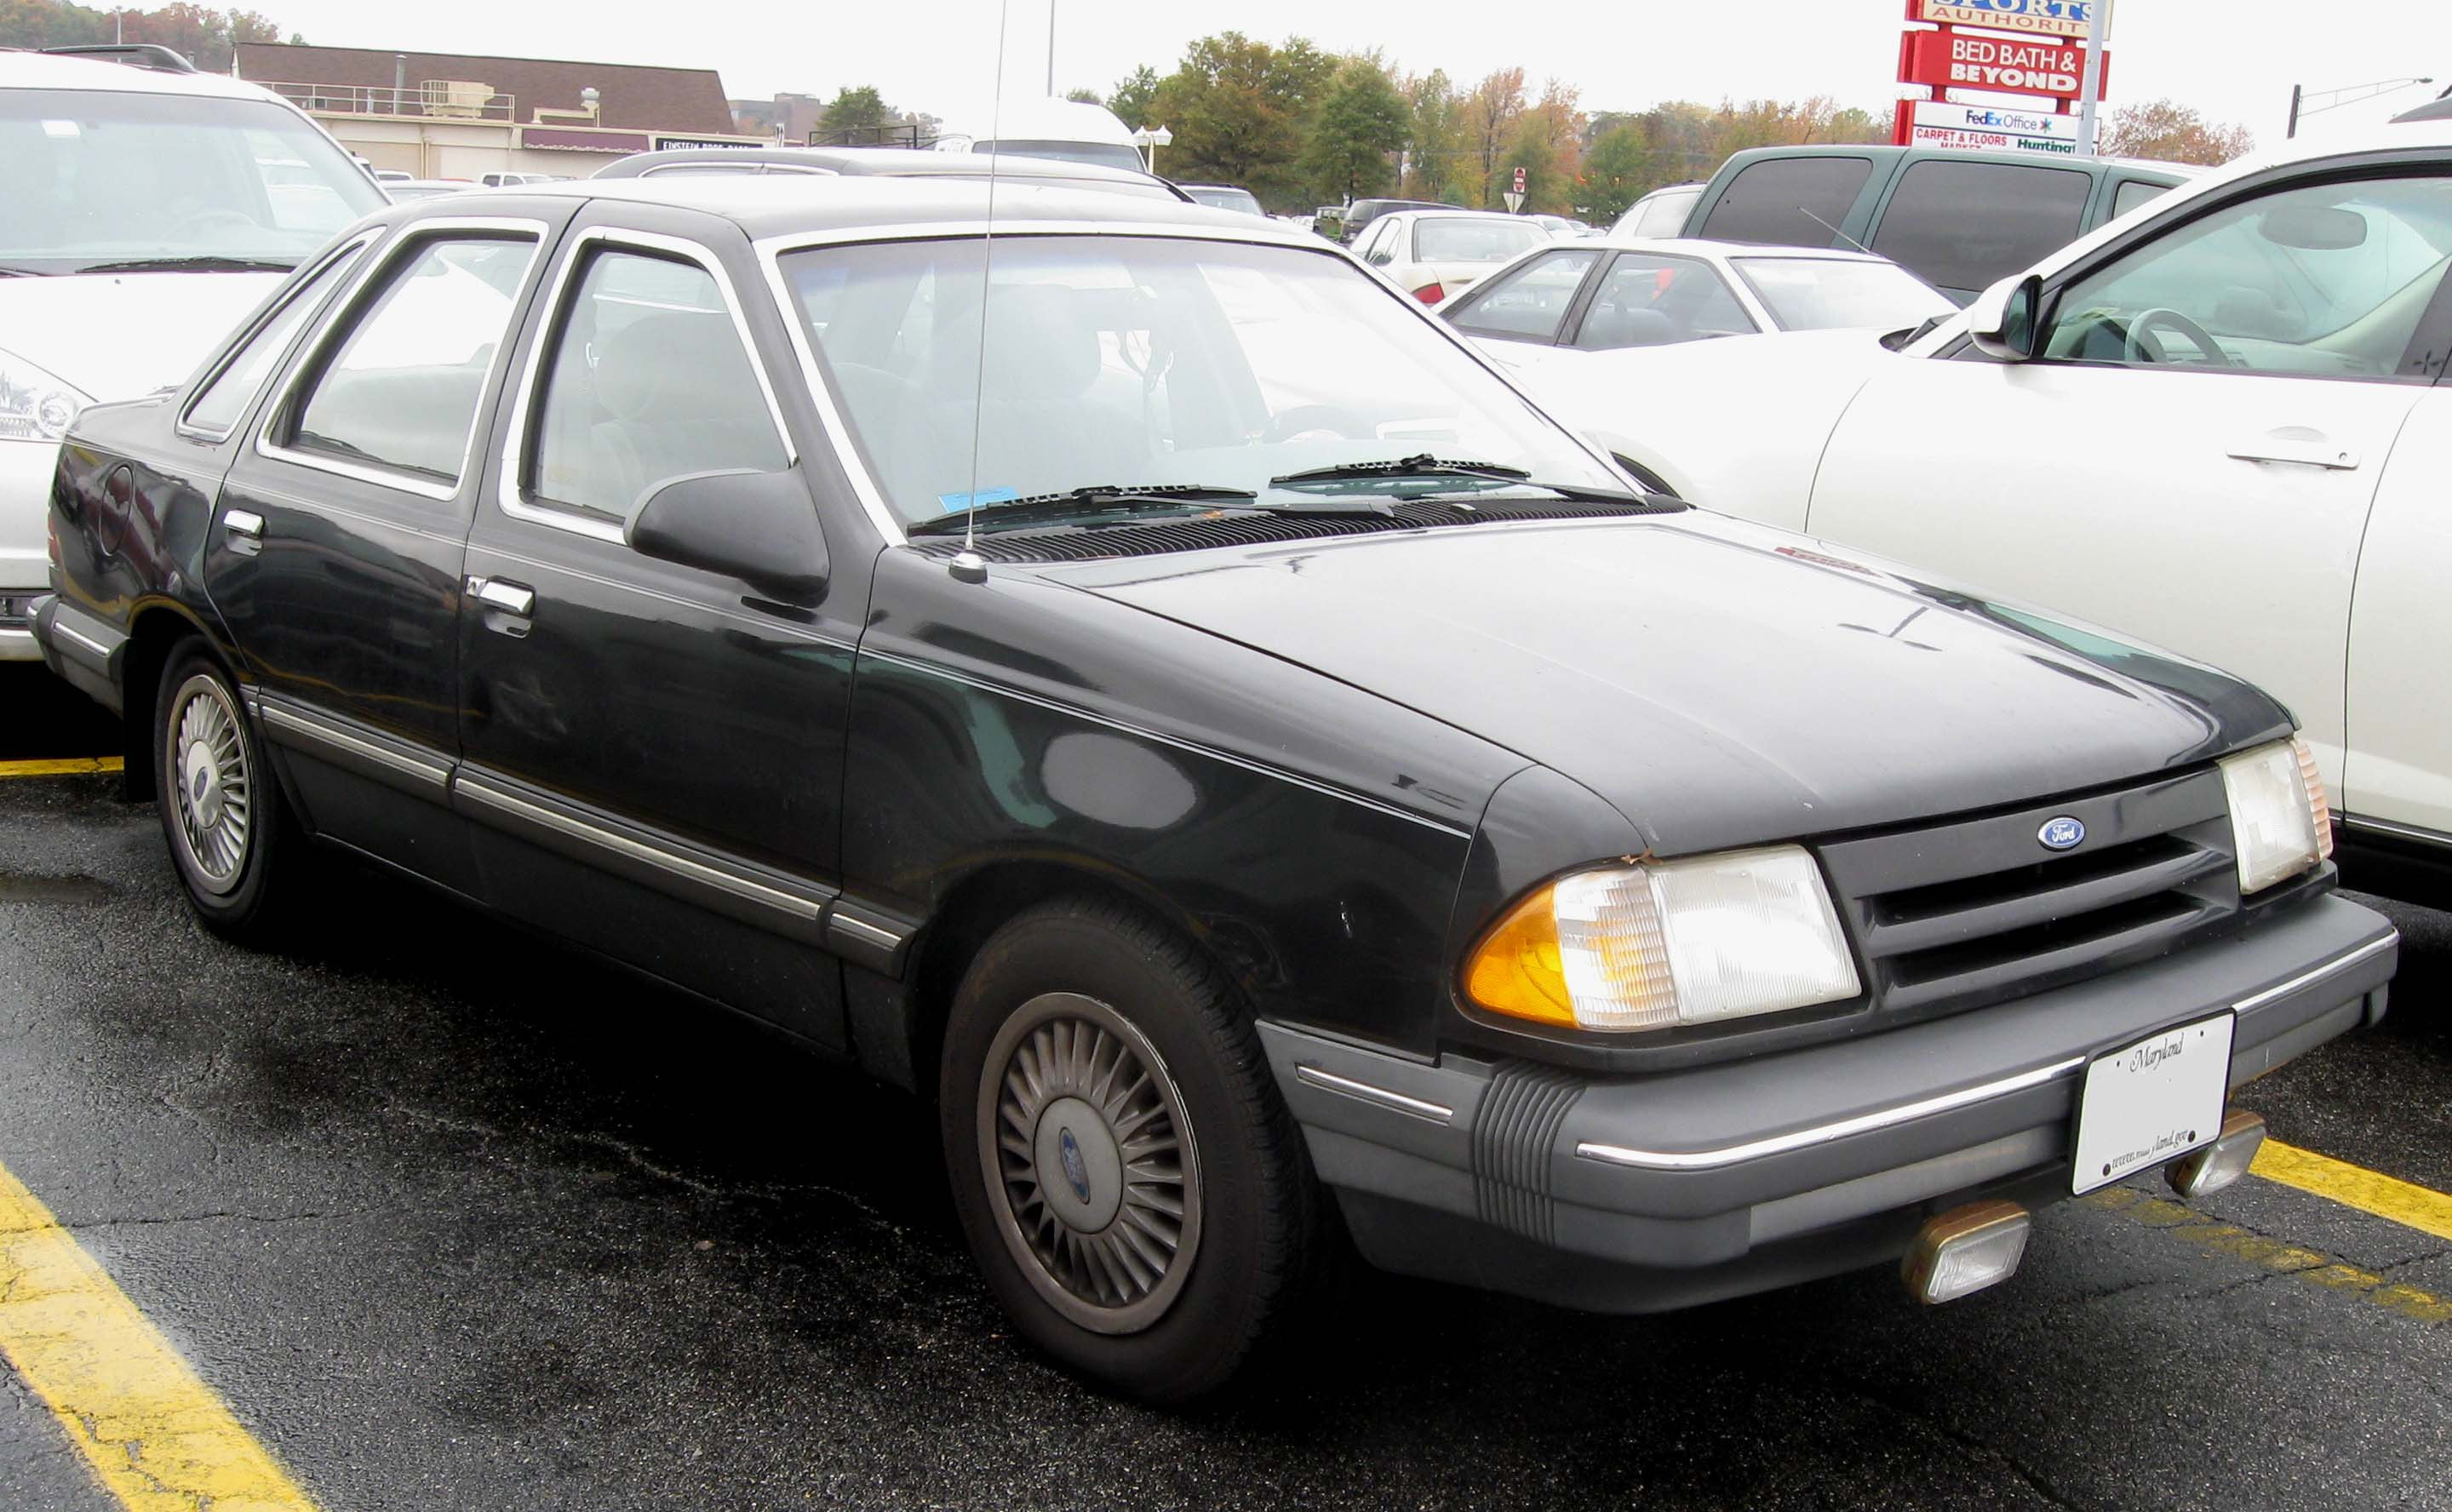 1987 Ford Tempo as well 65 Ford Galaxie 500 Parts together with 1991 Chevy Caprice Classic together with 1968 BMW 1600 moreover All American Classics Pick A Junkyard Online Directory. on classic car auto salvage yards